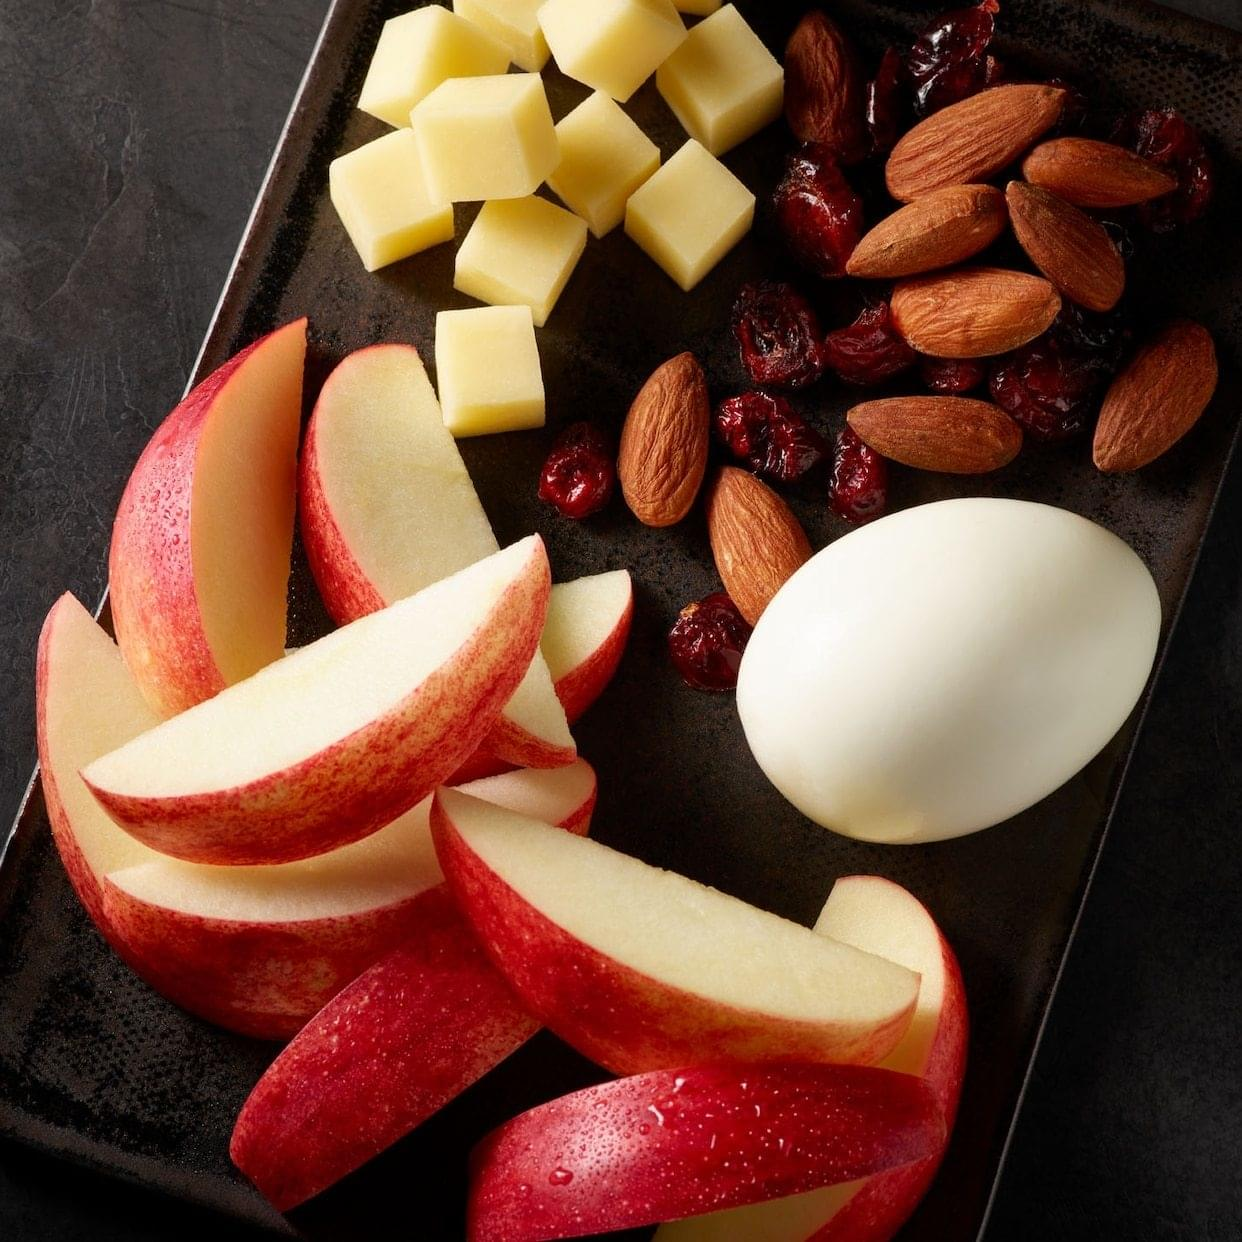 Starbucks Prosnax Gala Apples, Egg, White Cheddar Cheese, and Almonds Snack Box Nutrition Facts